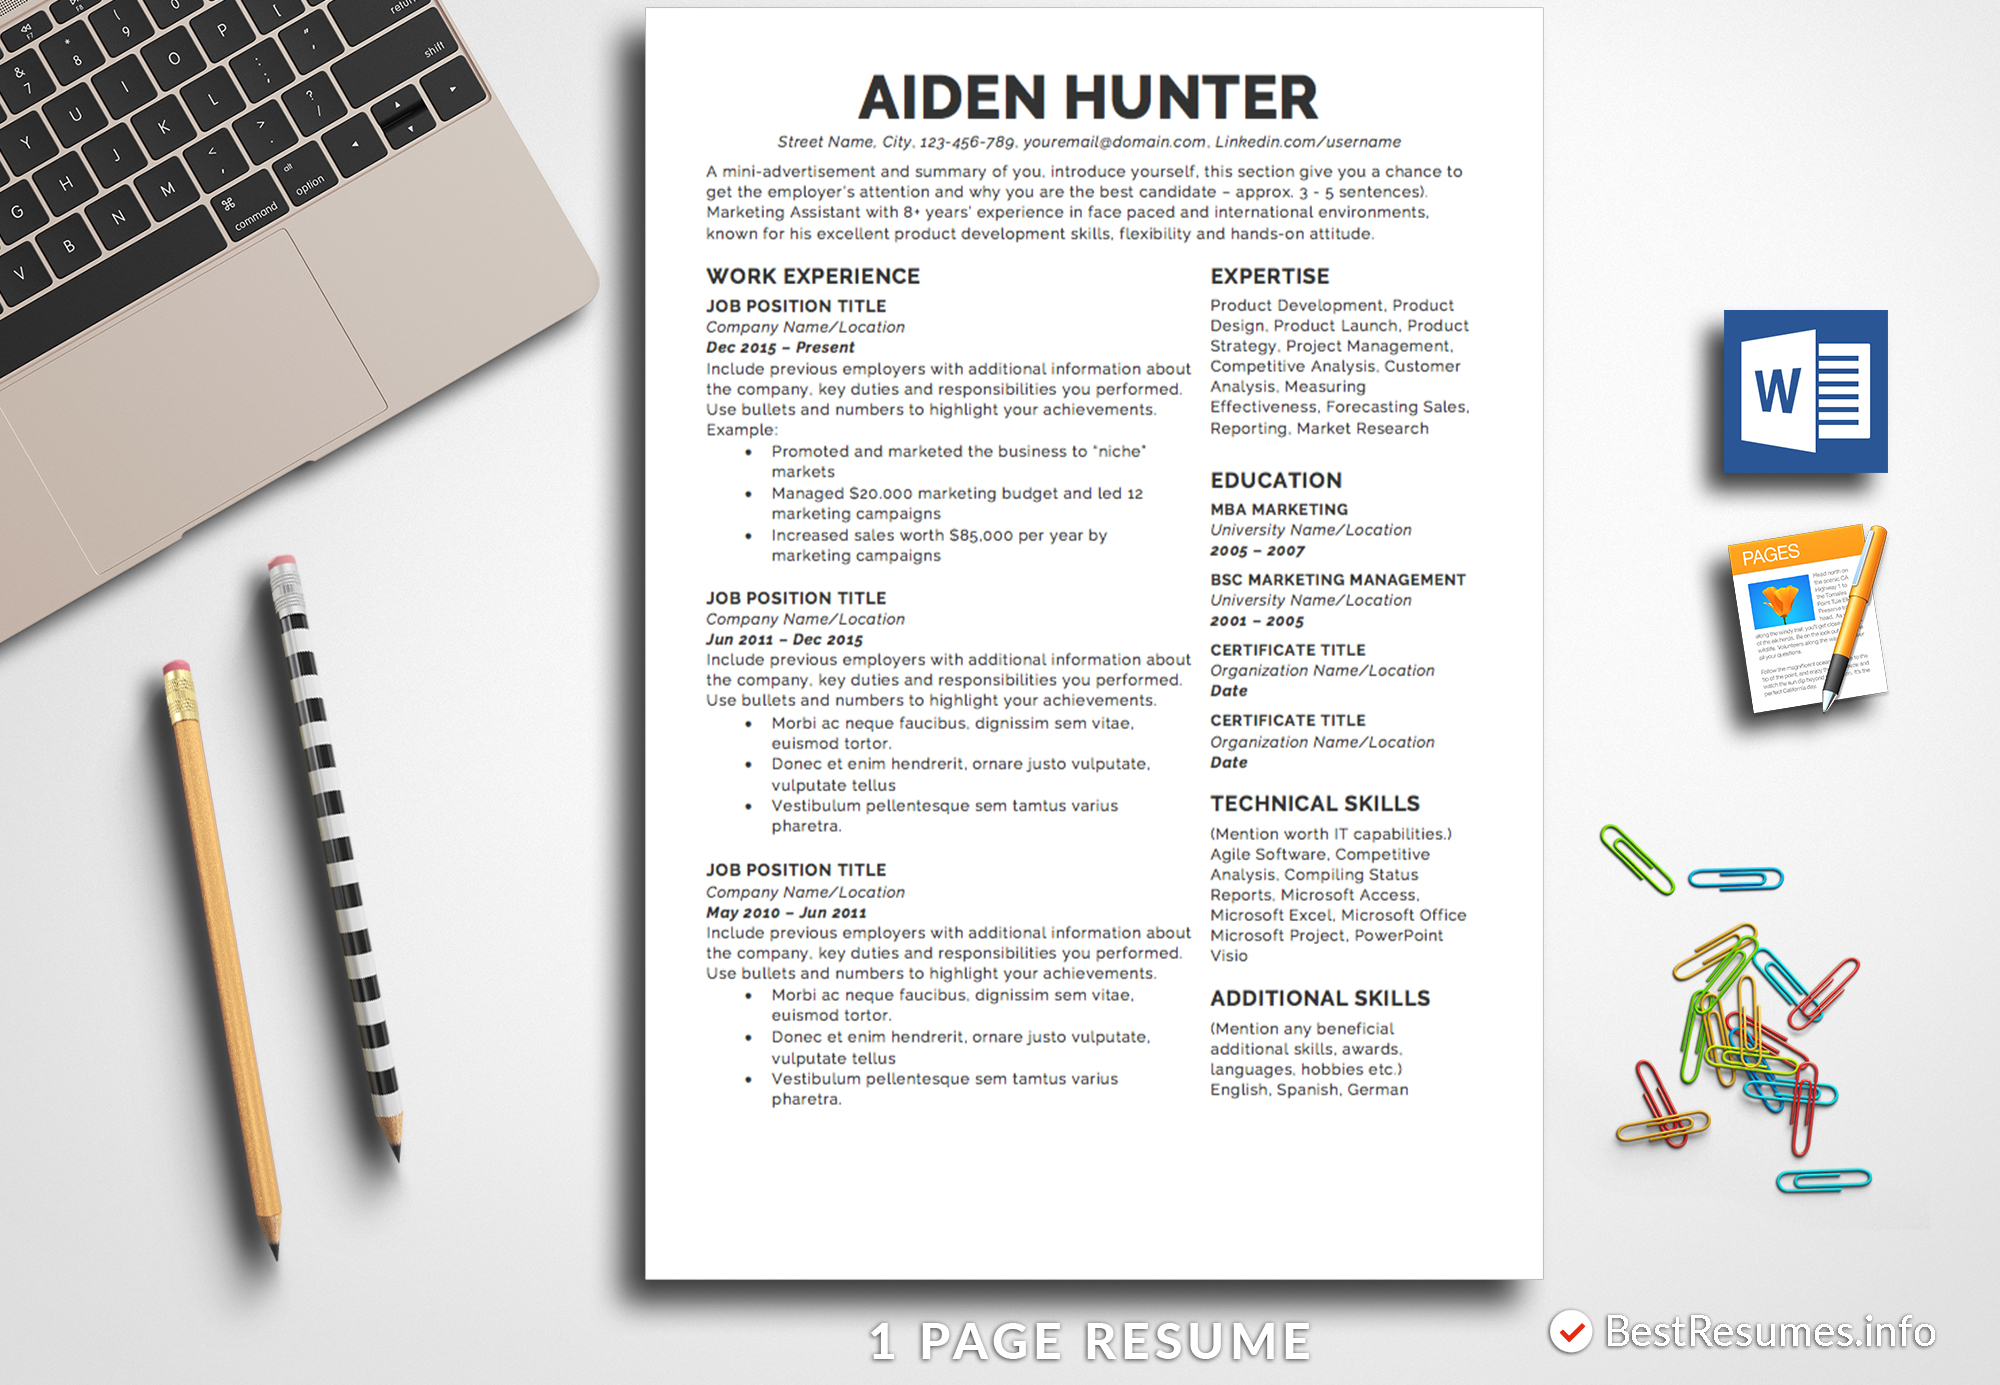 Resume Template Pages Mac - Resume Template Aiden Hunter Bestresumes